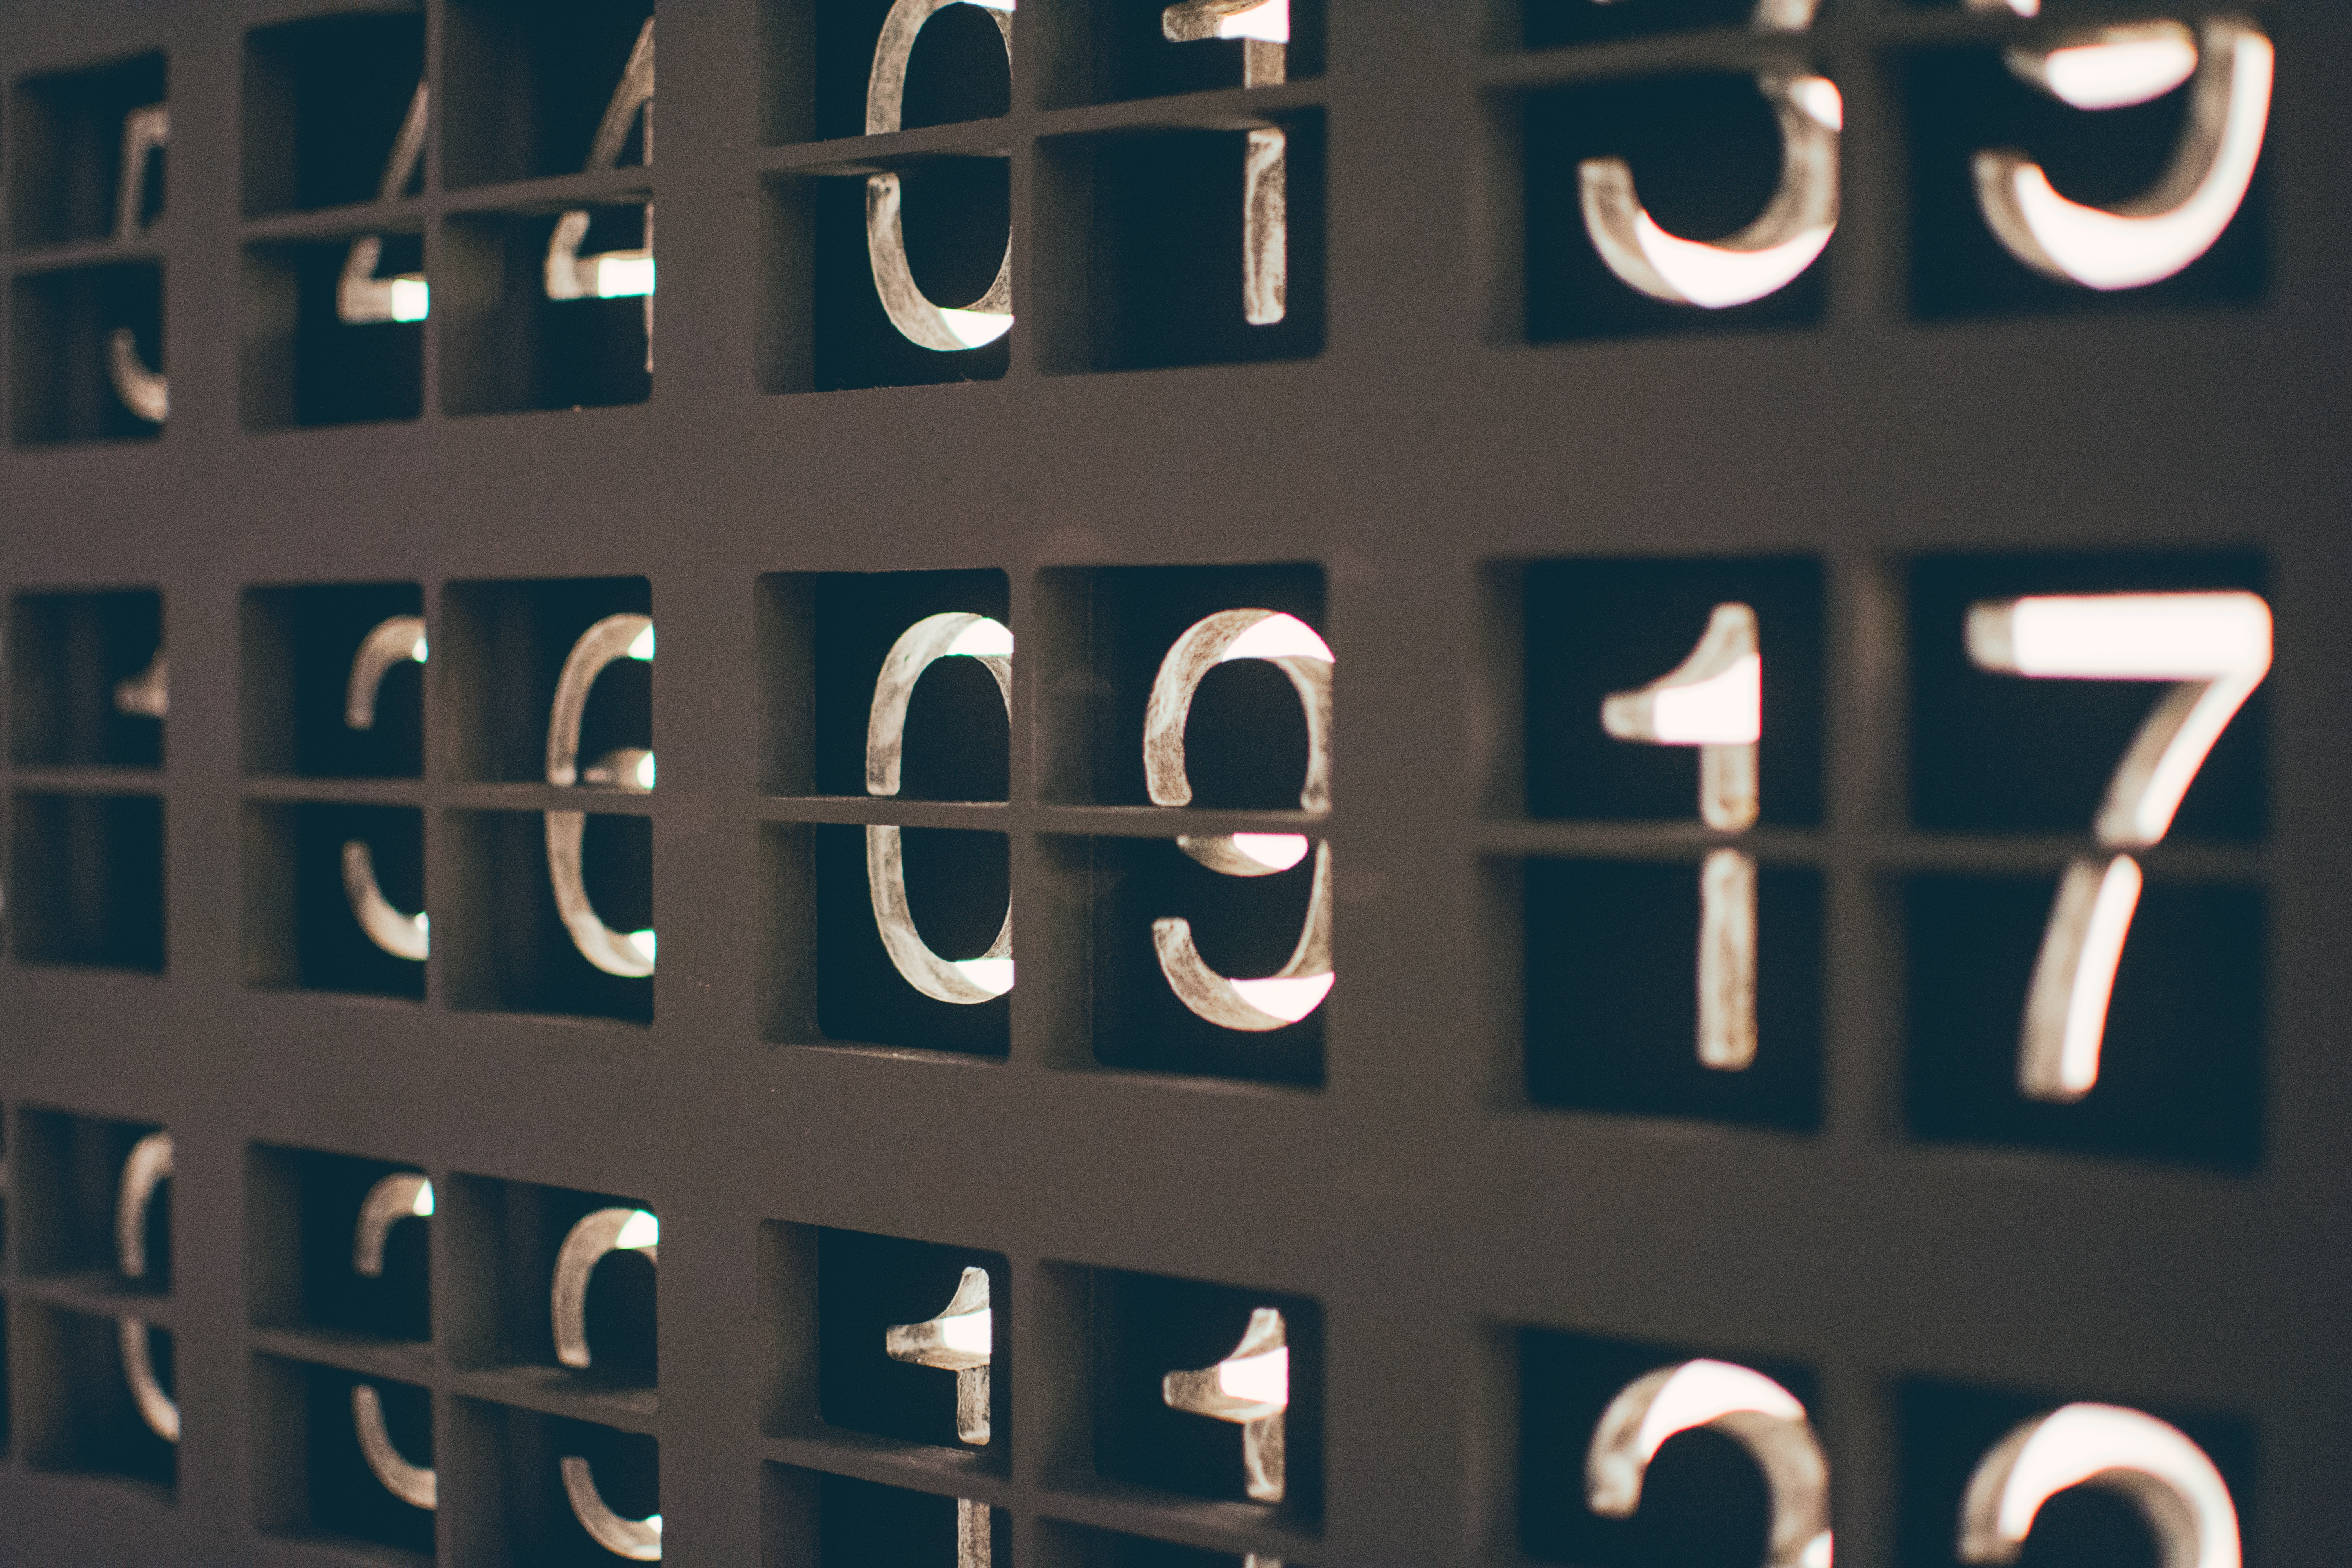 Glowing numbers in a row.